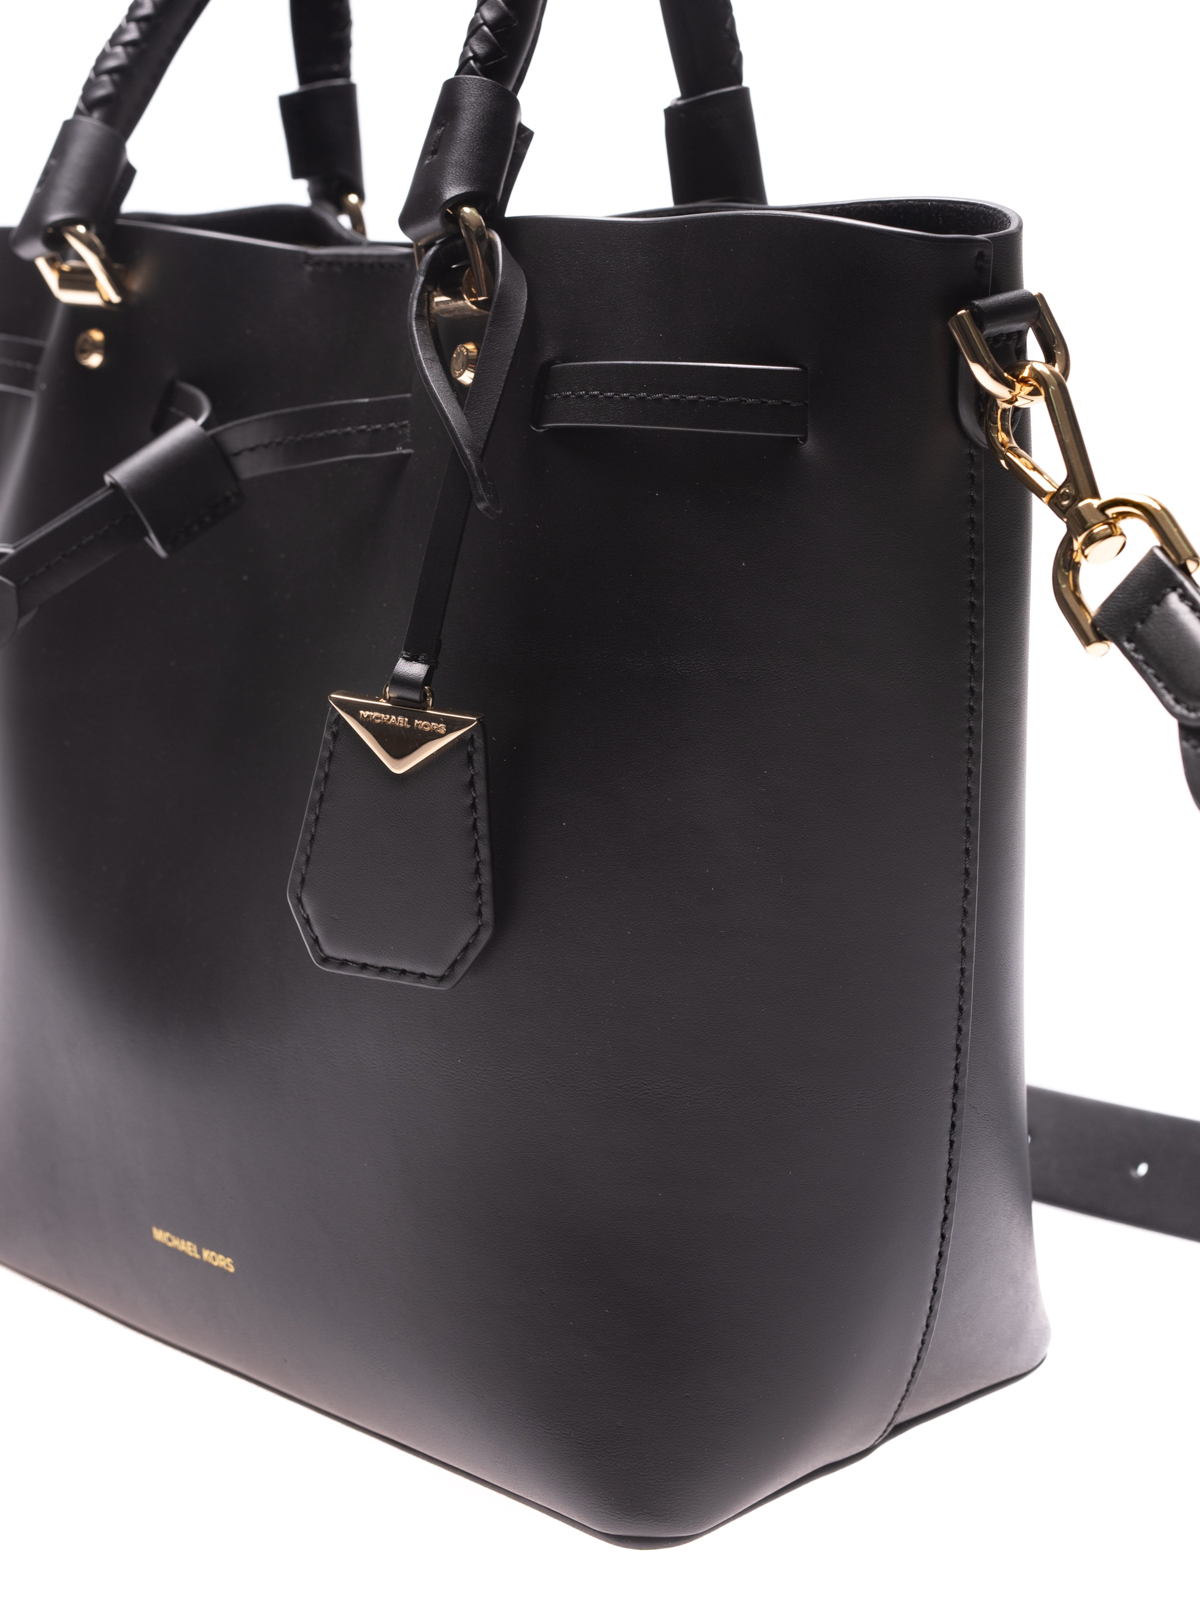 9c5f1253de4e Michael Kors - Blakely black medium bucket bag - Bucket bags ...